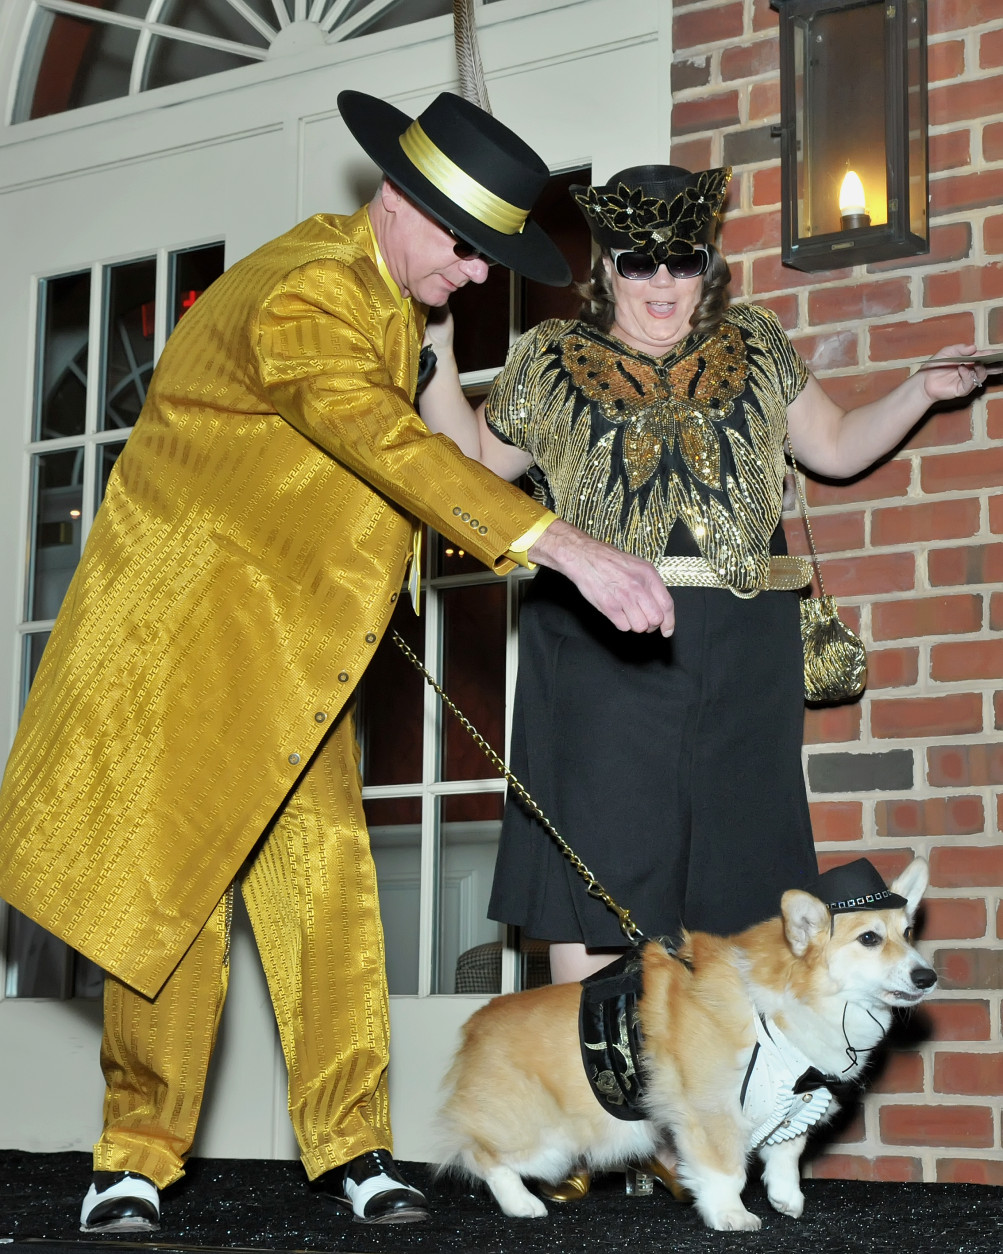 Yacko, a six-year-old Welsh Corgi, channels 1941 in New York City. (Shannon Finney Photography)